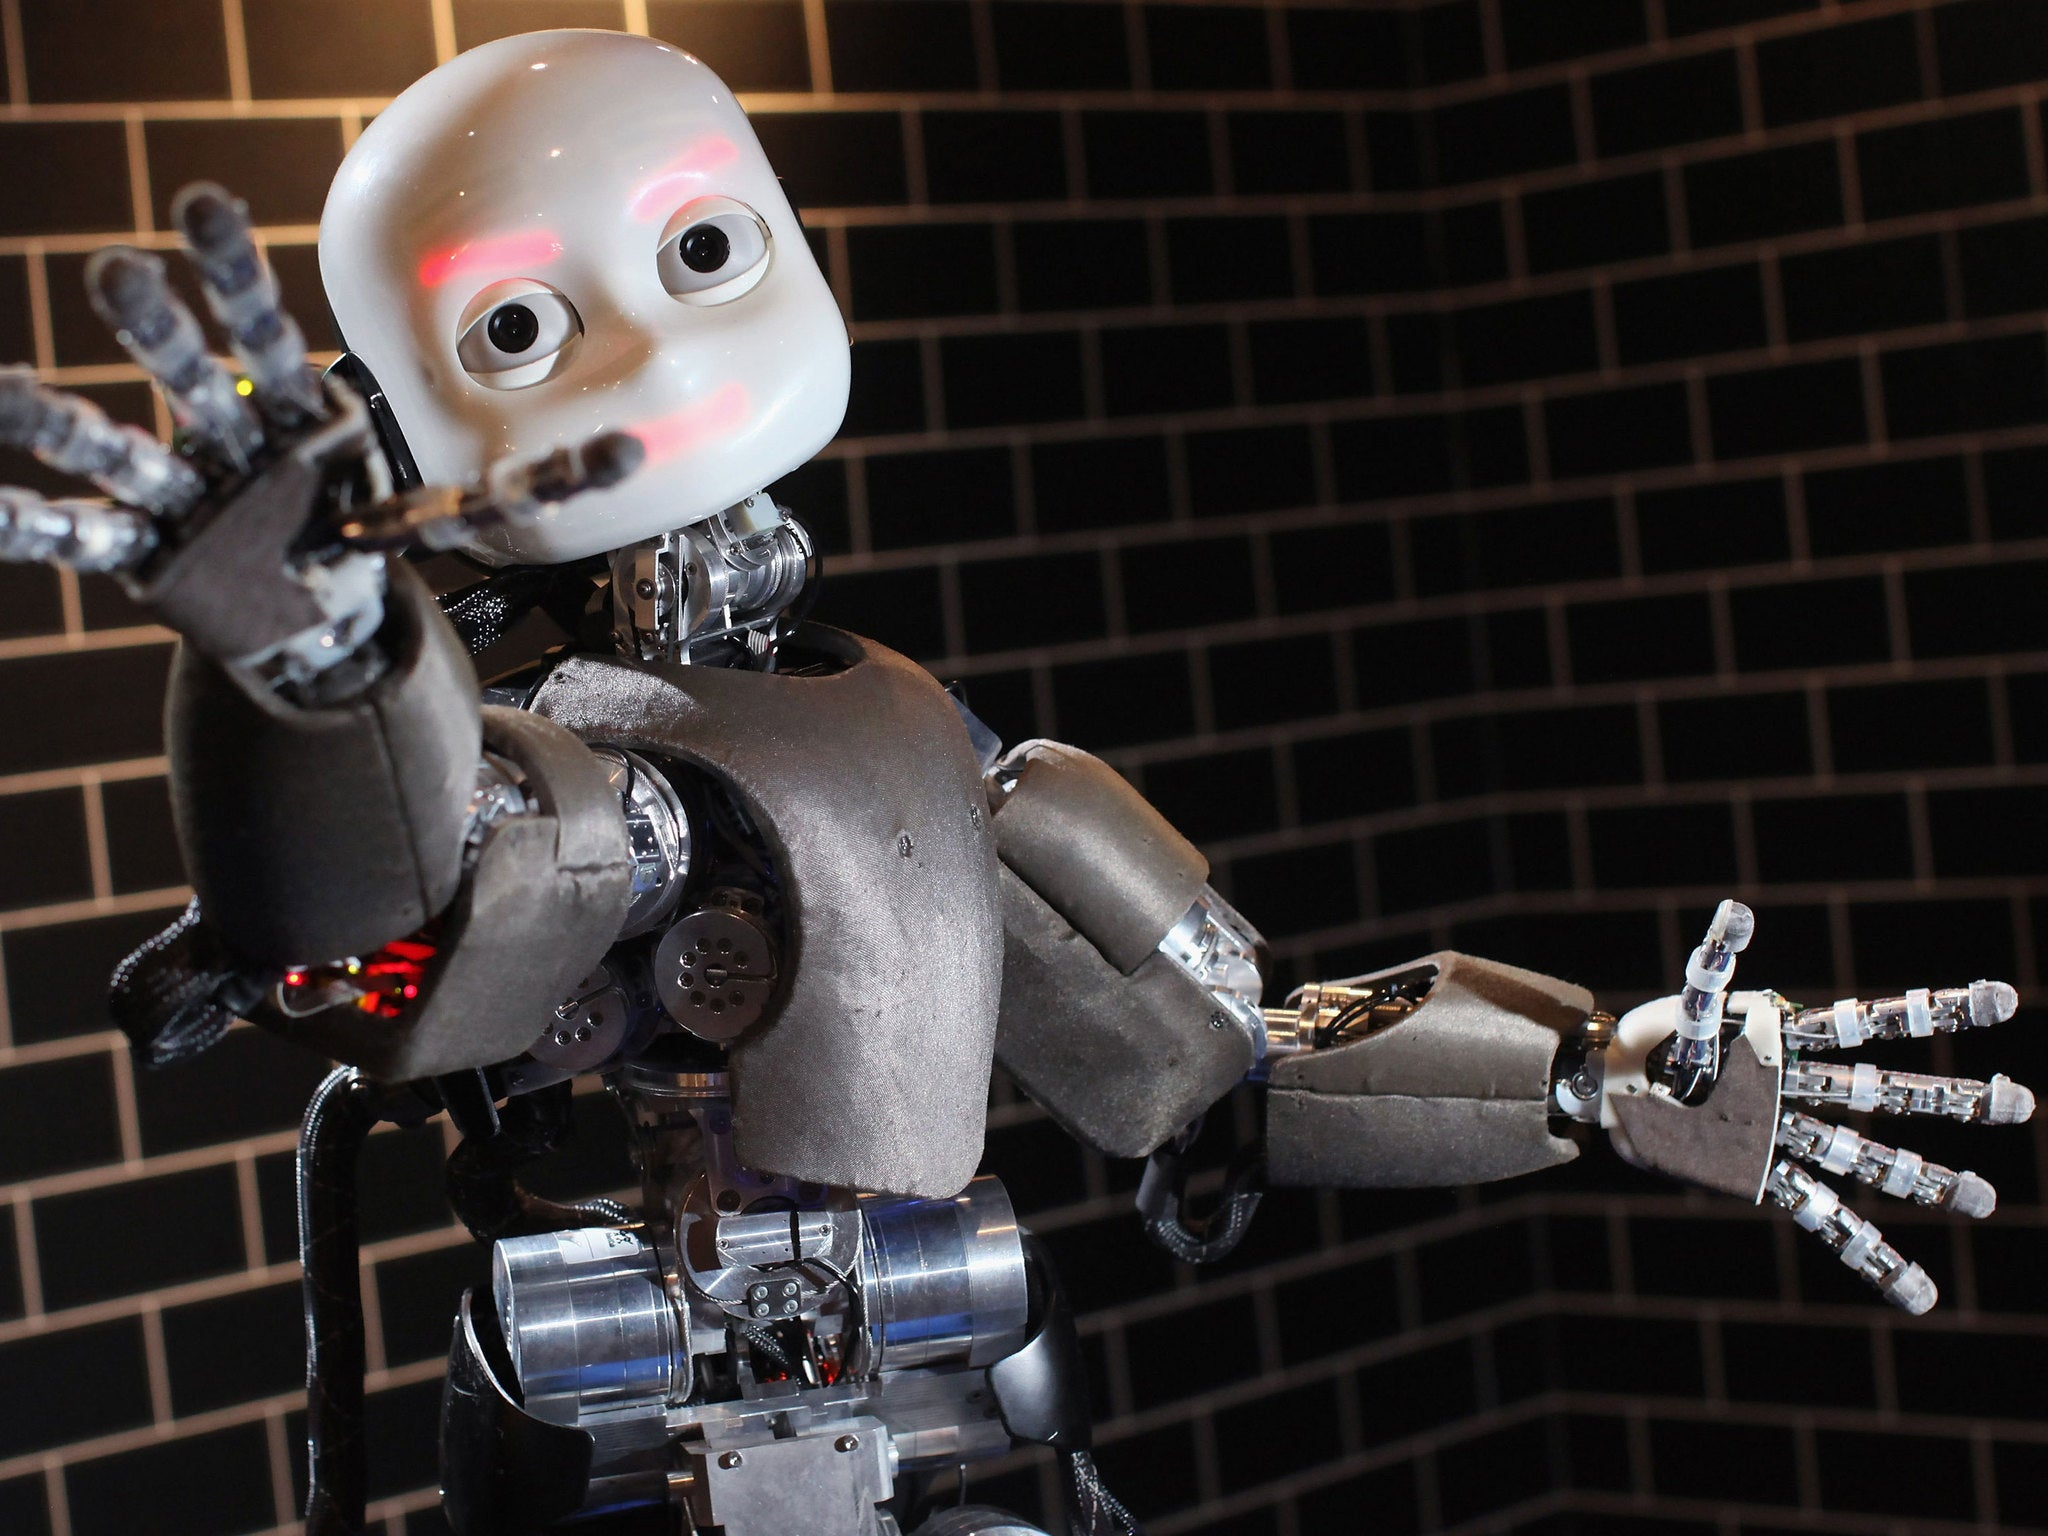 Google AI robot answers the meaning of life and tells humans how to be good